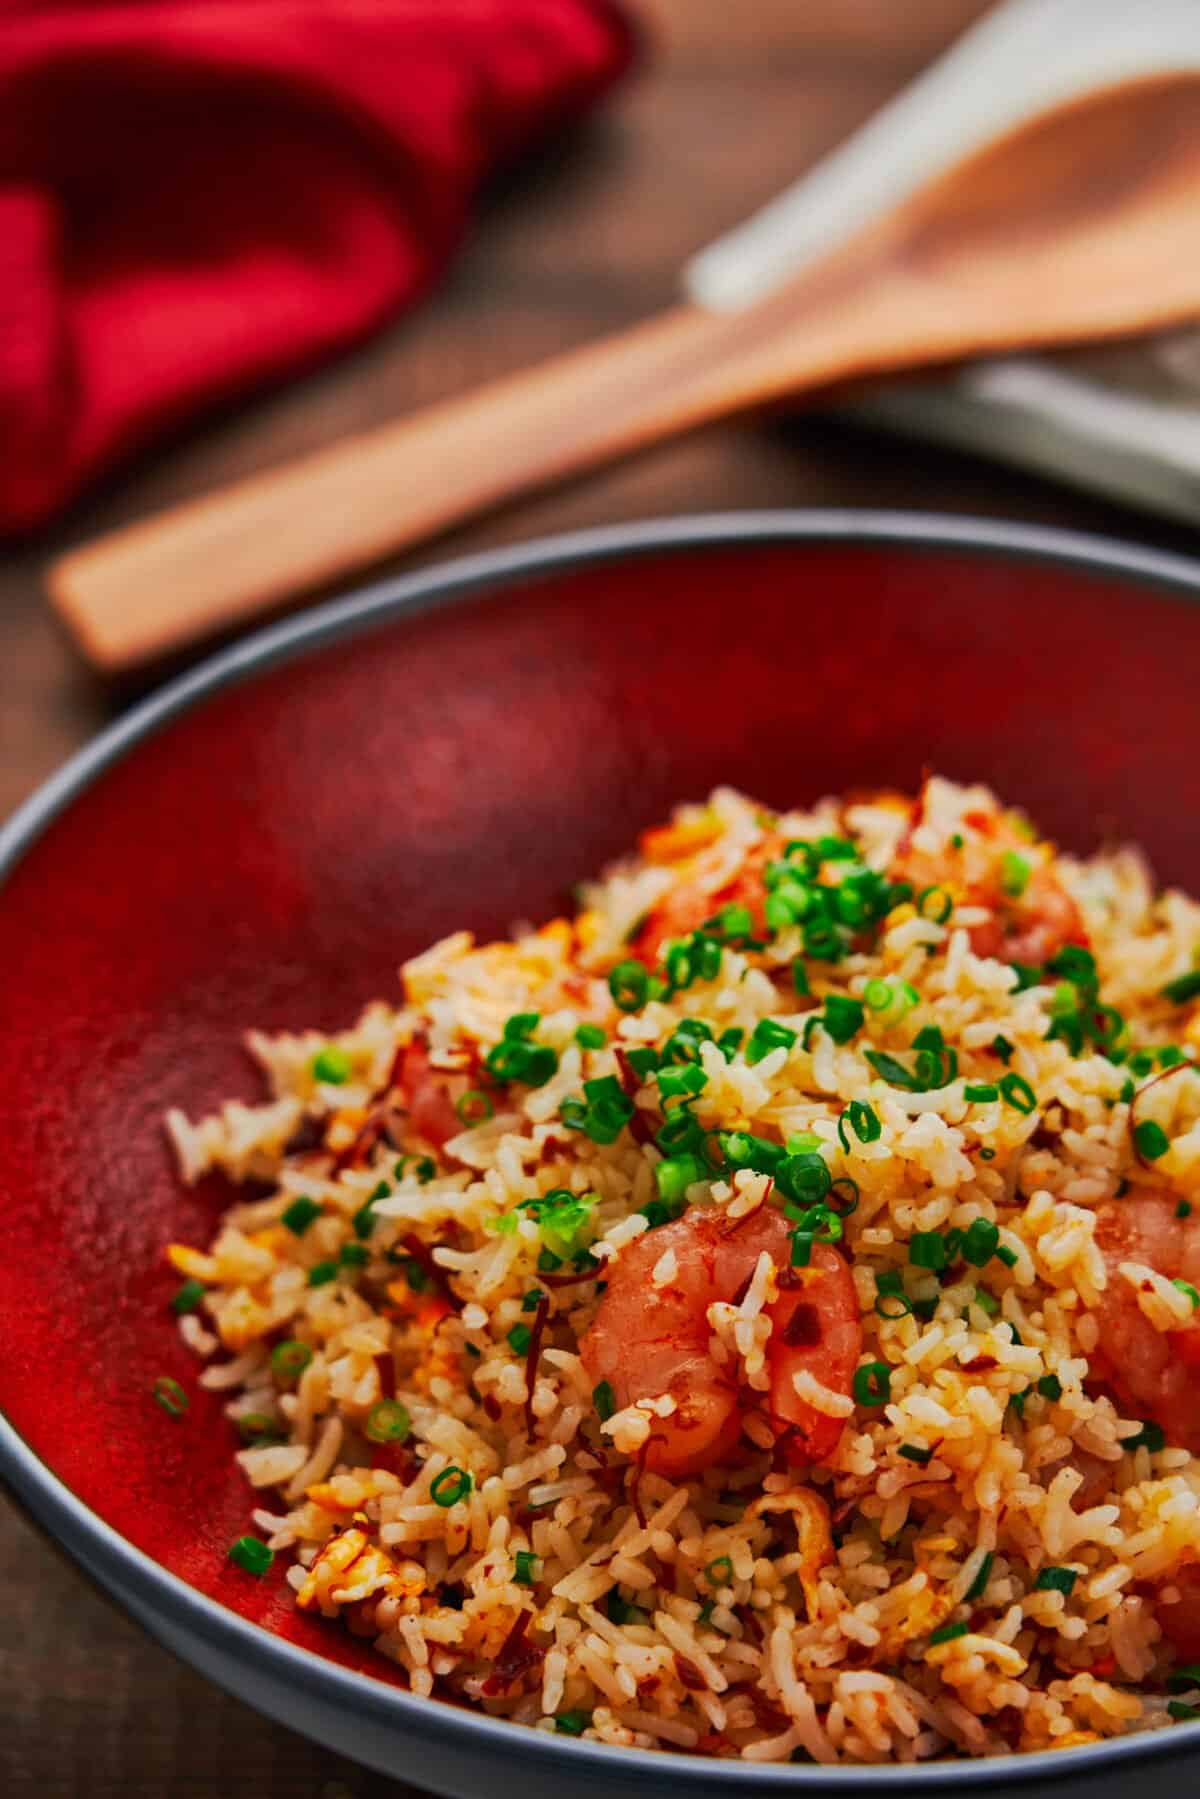 Fried rice is such a basic recipe, but there are a few tricks that can take it to the next level. Here are my secrets for making the best shrimp fried rice!